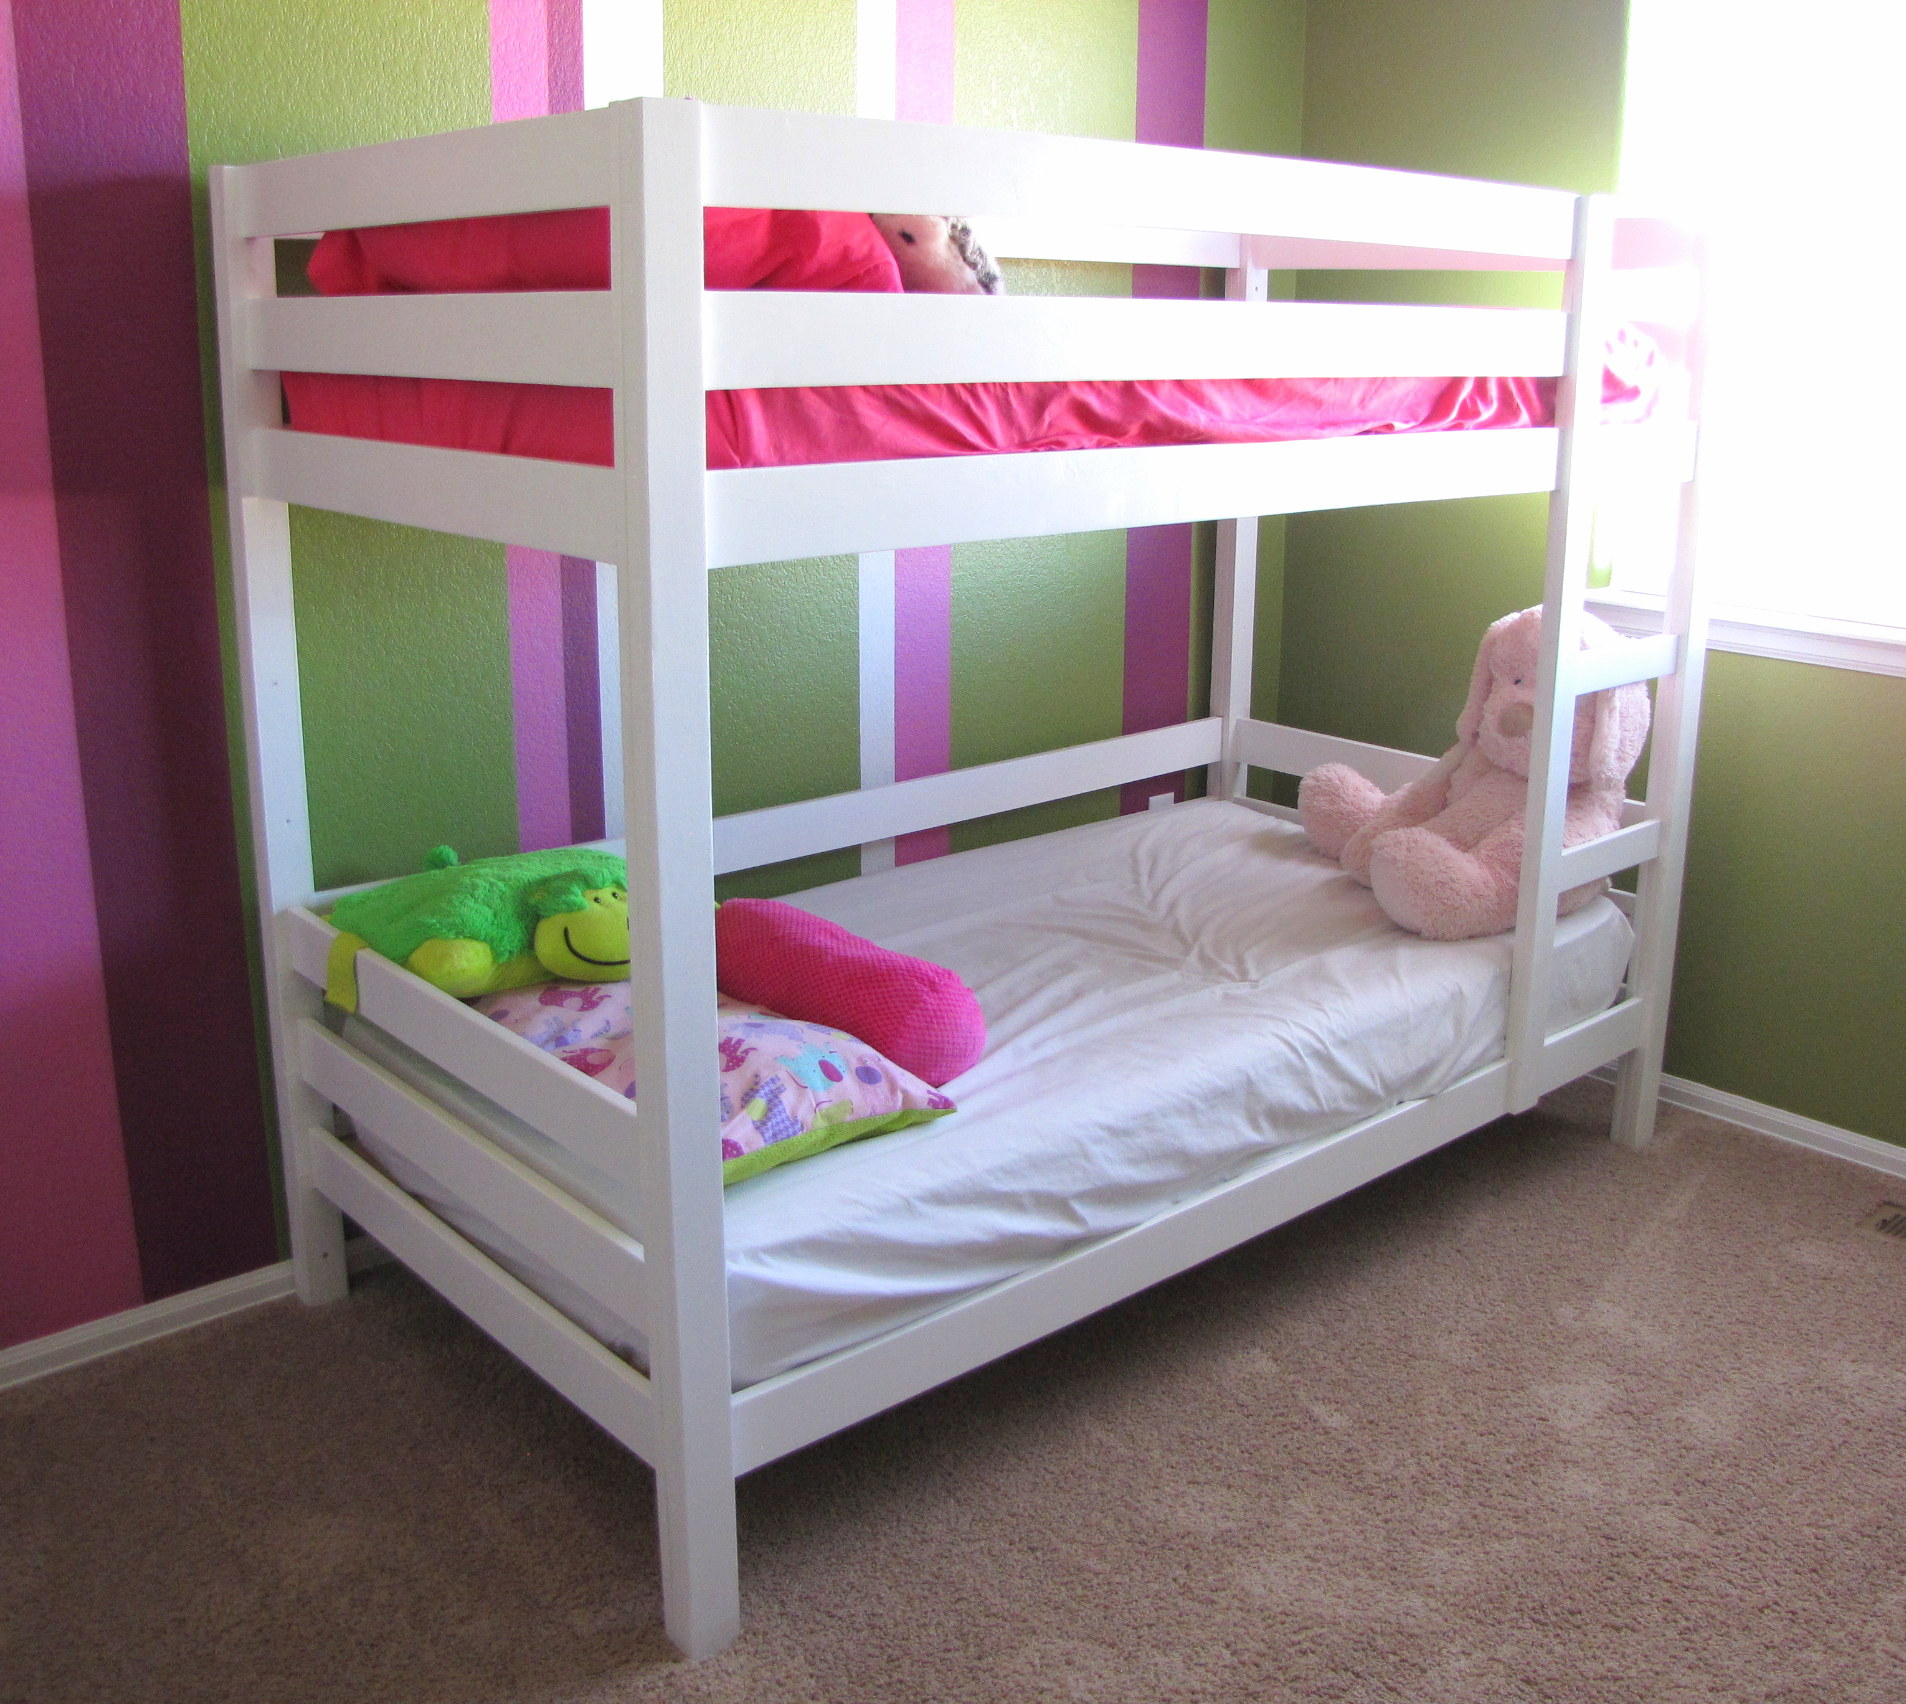 Ana White | Classic Bunk Beds in White - DIY Projects